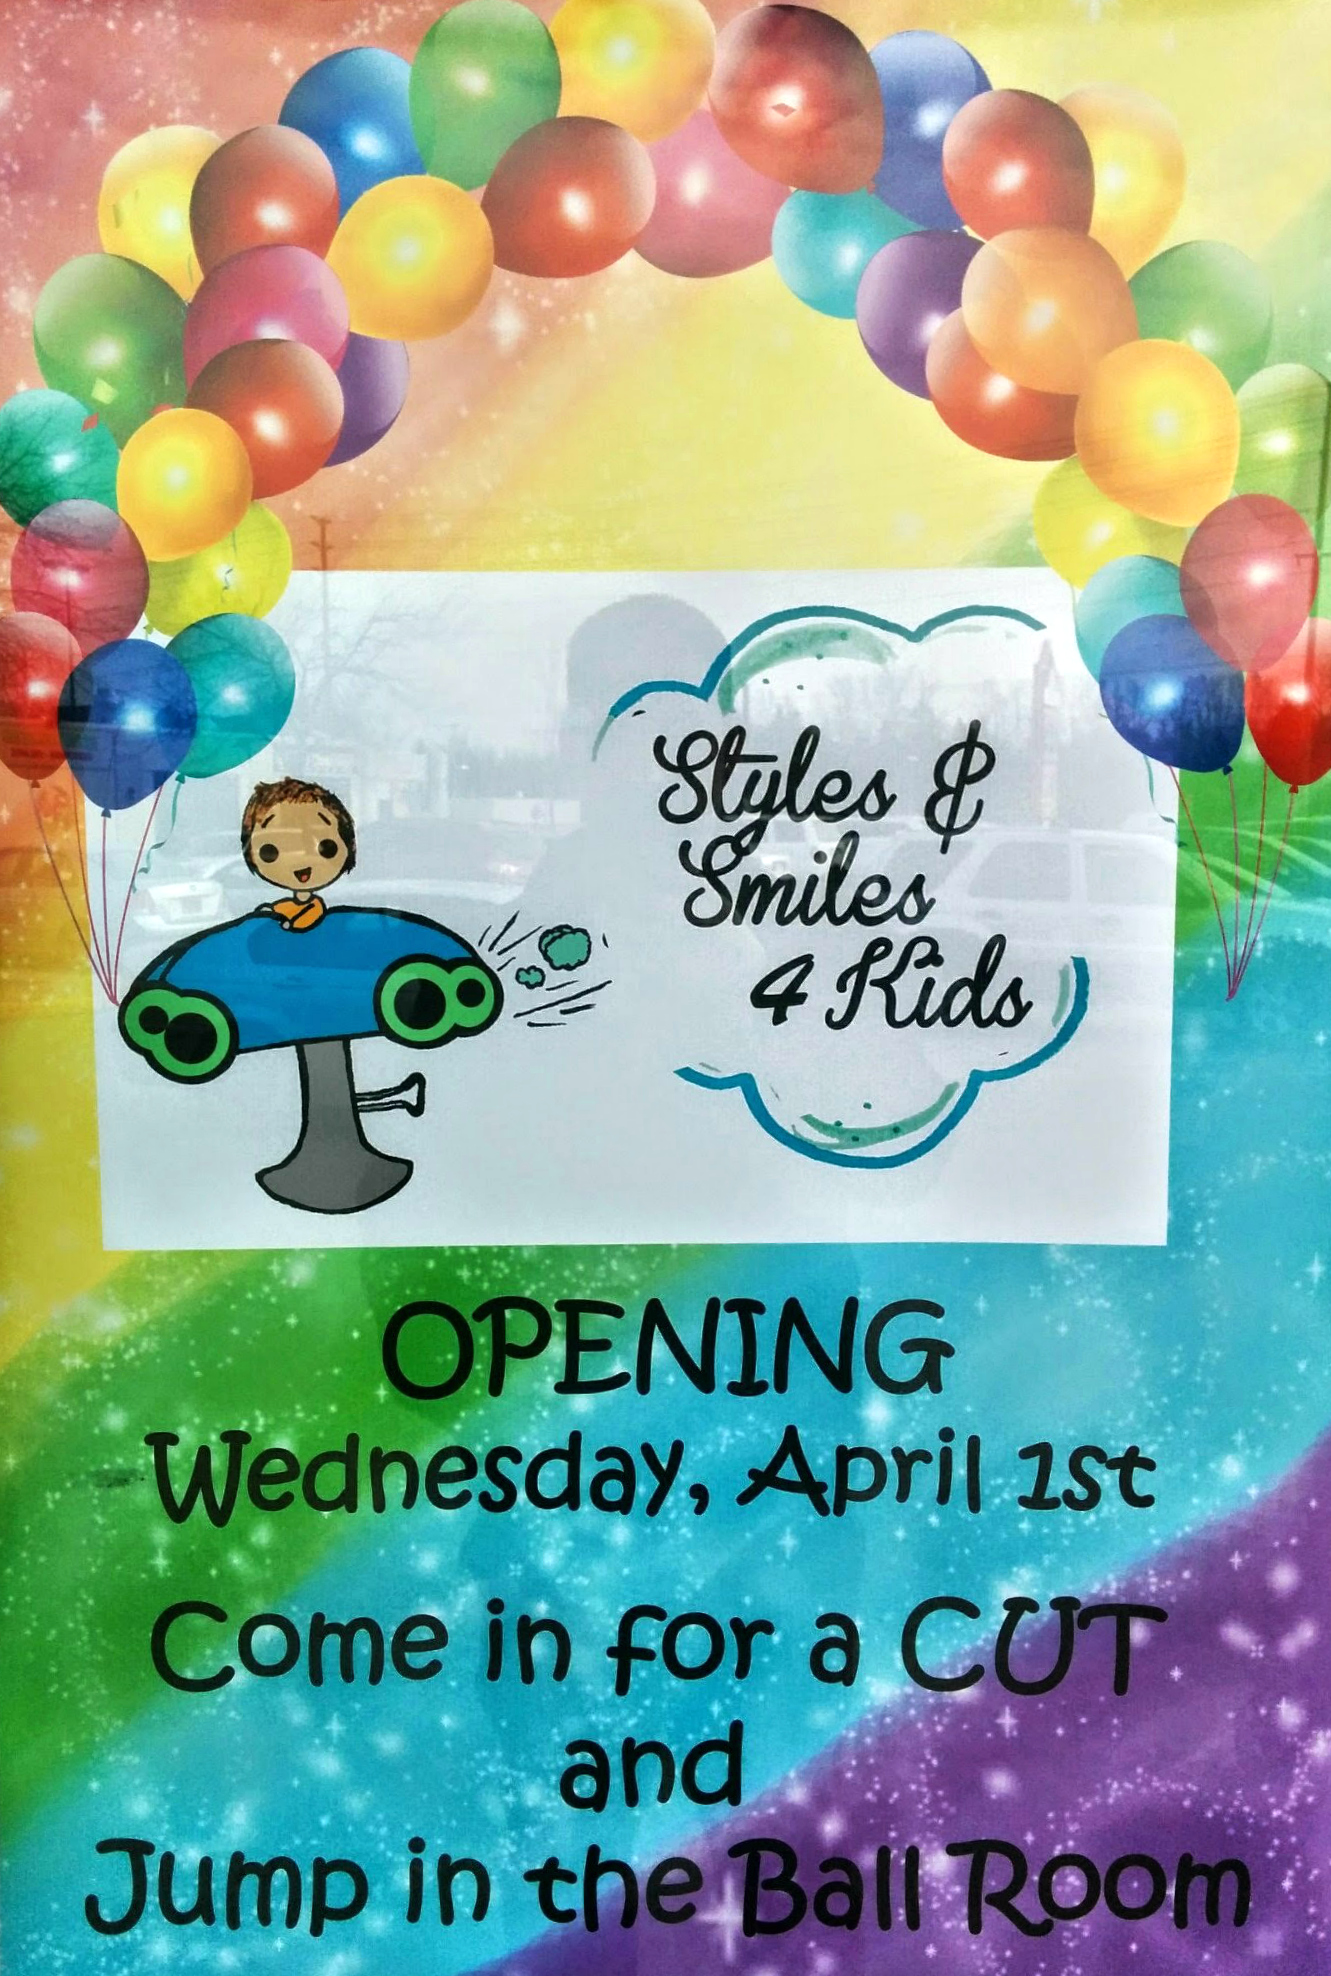 Schedule A Haircut At Styles Smiles 4 Kids The Motherhood Scene